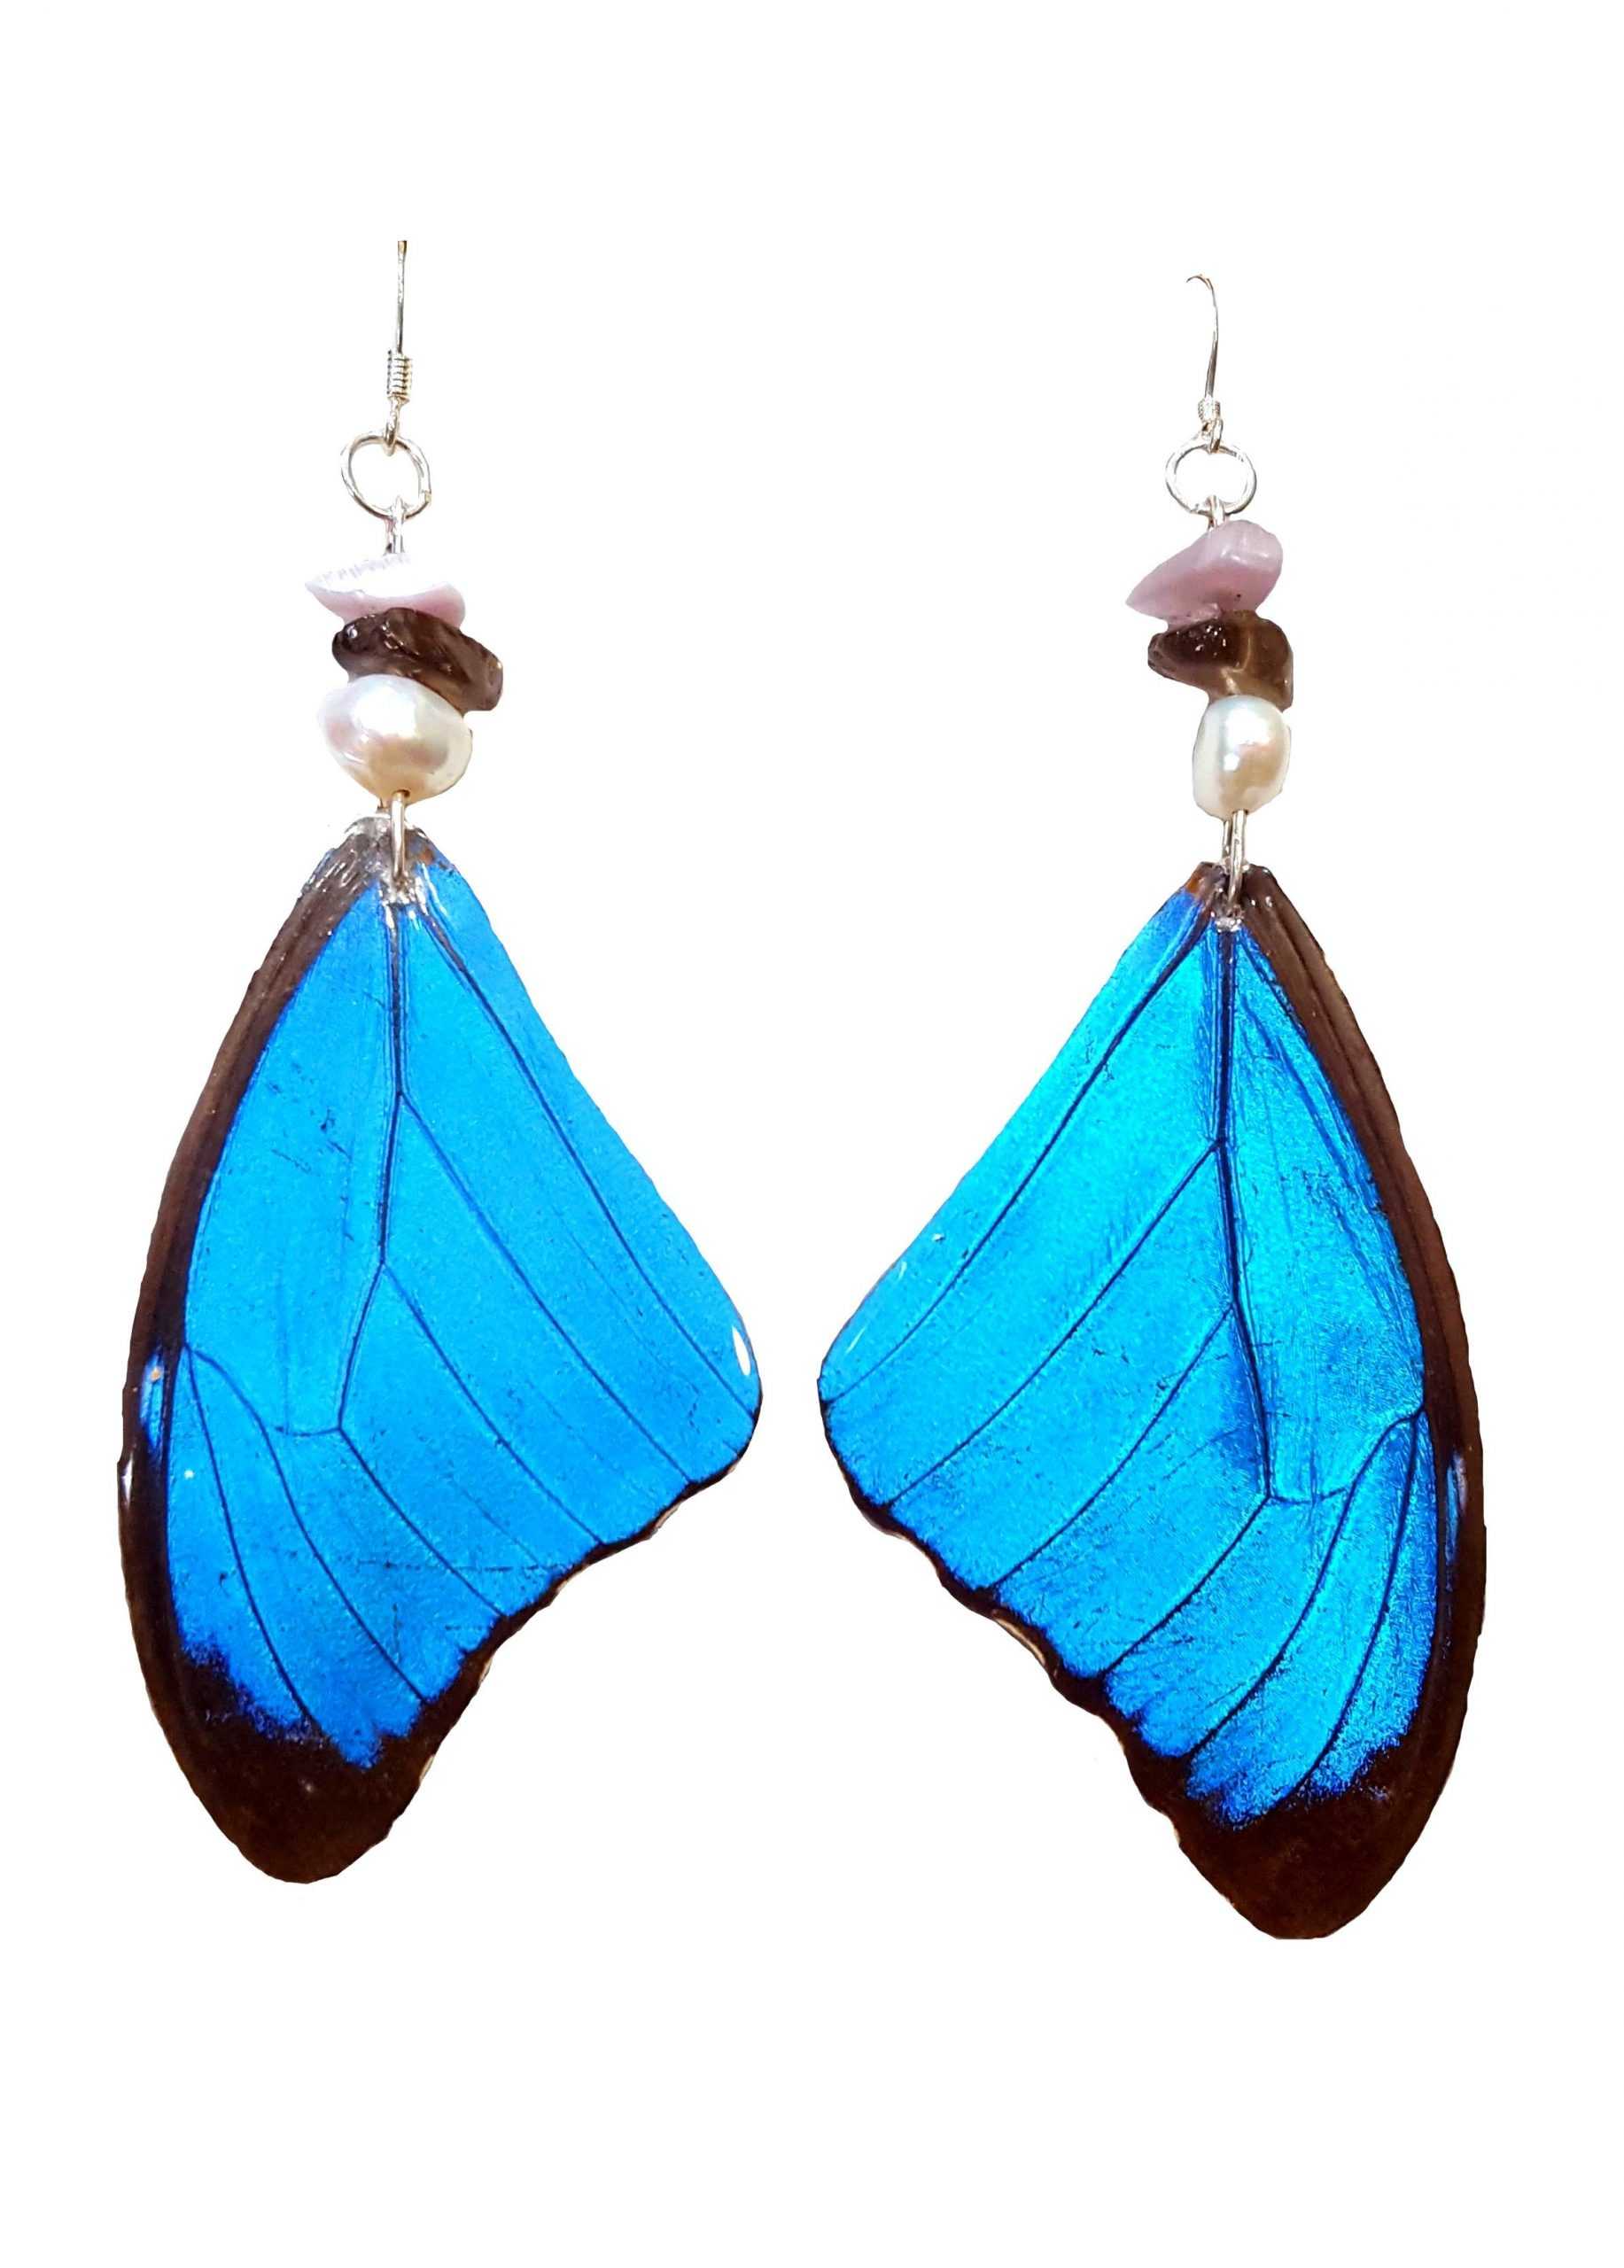 butterfly wing earrings, real butterfly wing jewelry